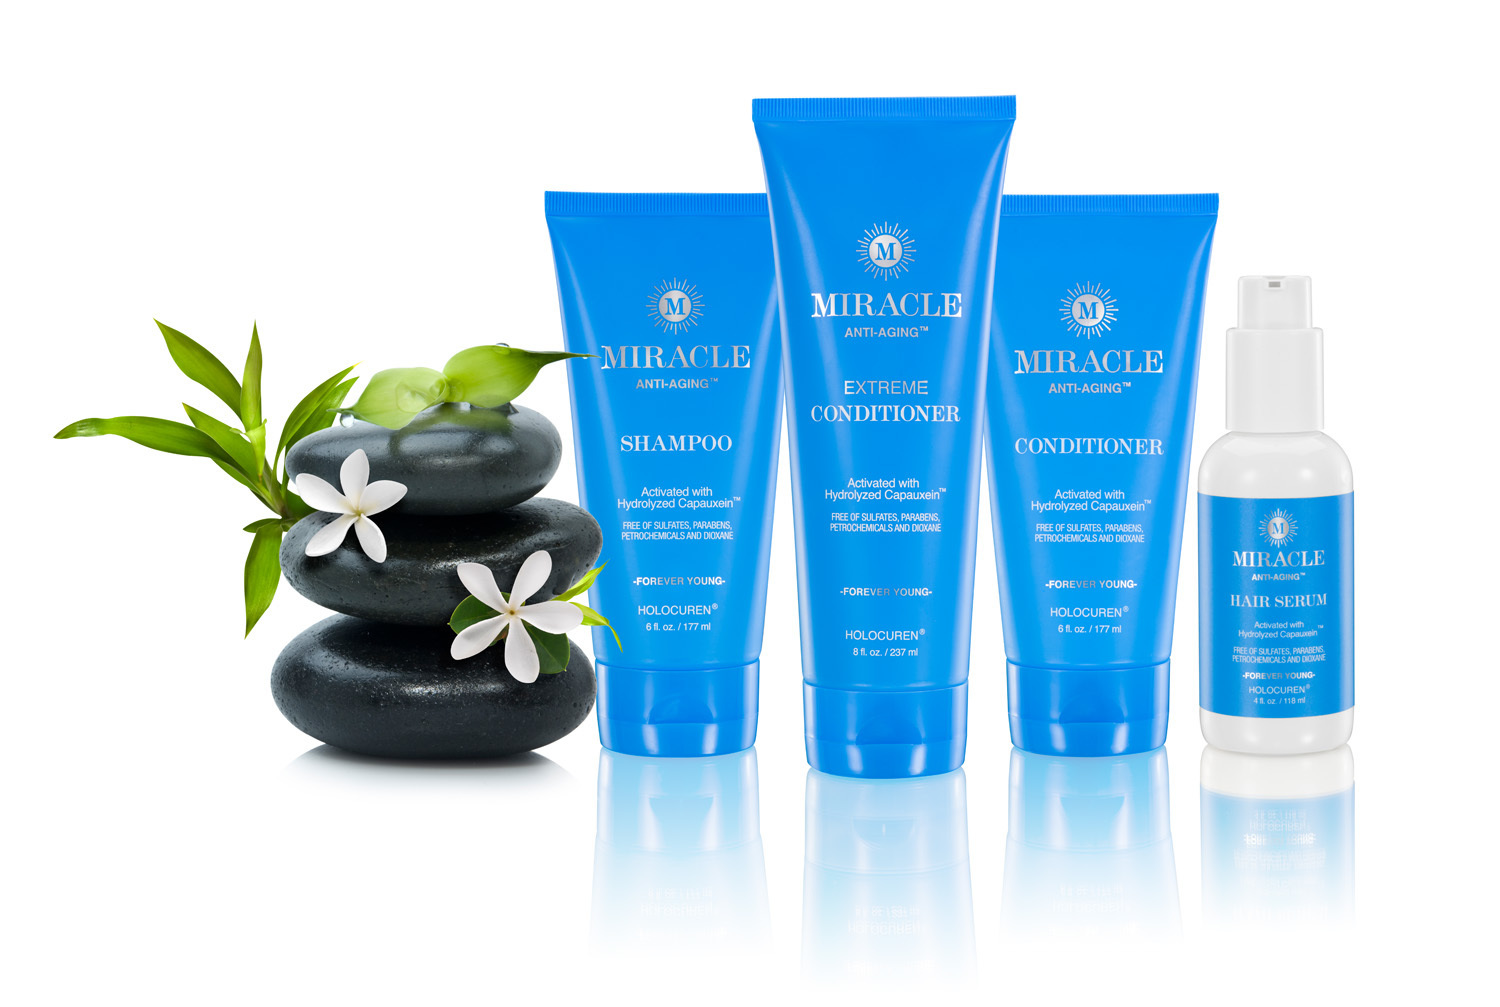 Miracle Anti-Aging Hair Care Set For Hair Growth, Thinning Hair and Hair Repair 00005